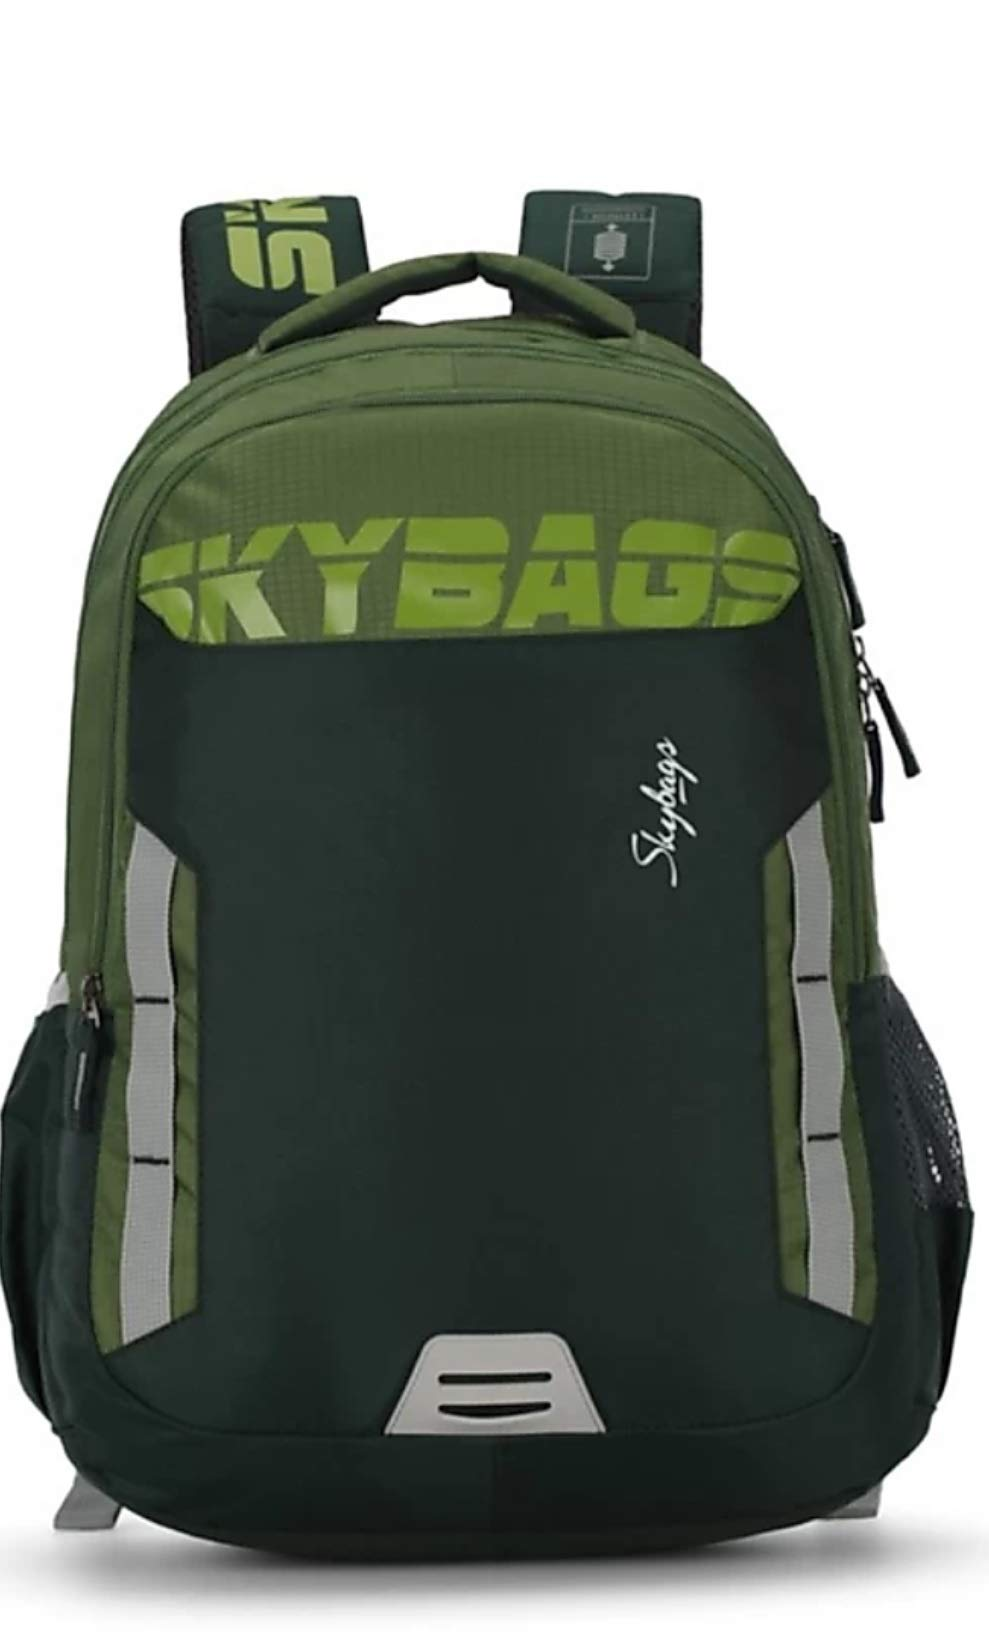 Skybags Figo Extra 02 36 Ltrs Green Casual Backpack (FIGO Extra 02) product image